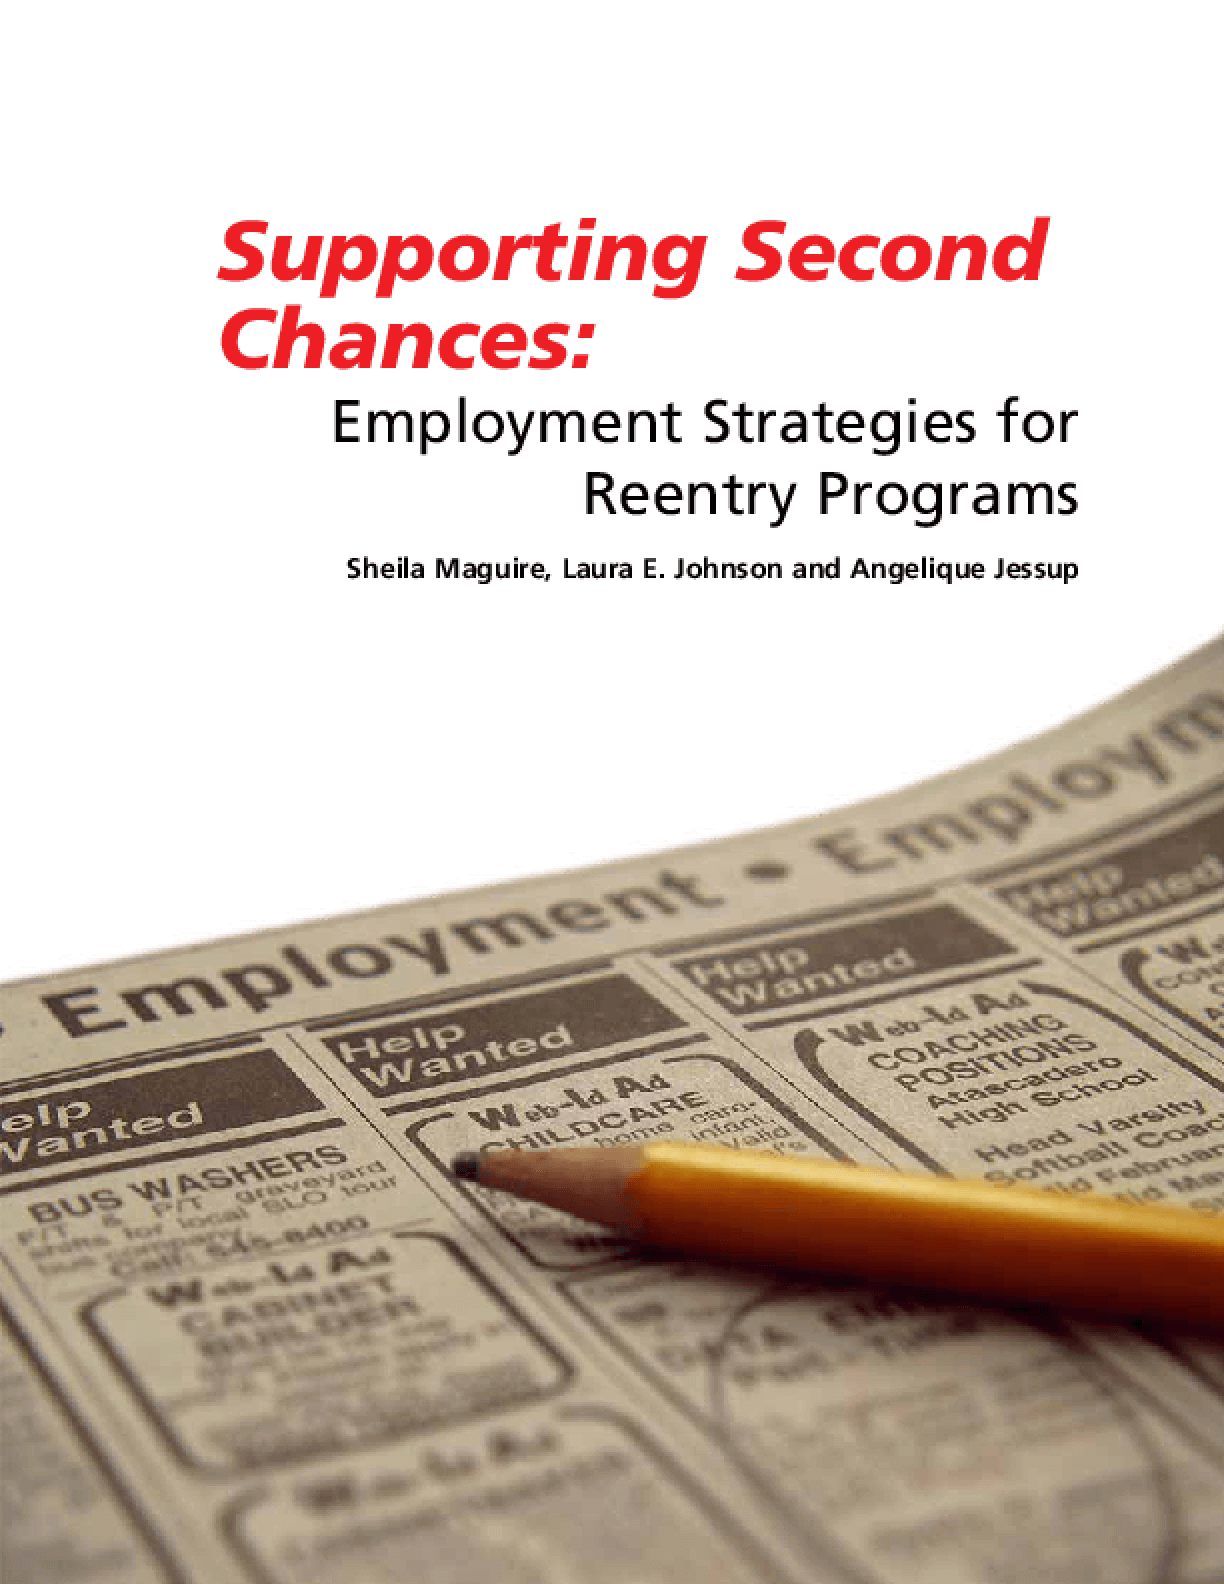 Supporting Second Chances: Employment Strategies for Reentry Programs